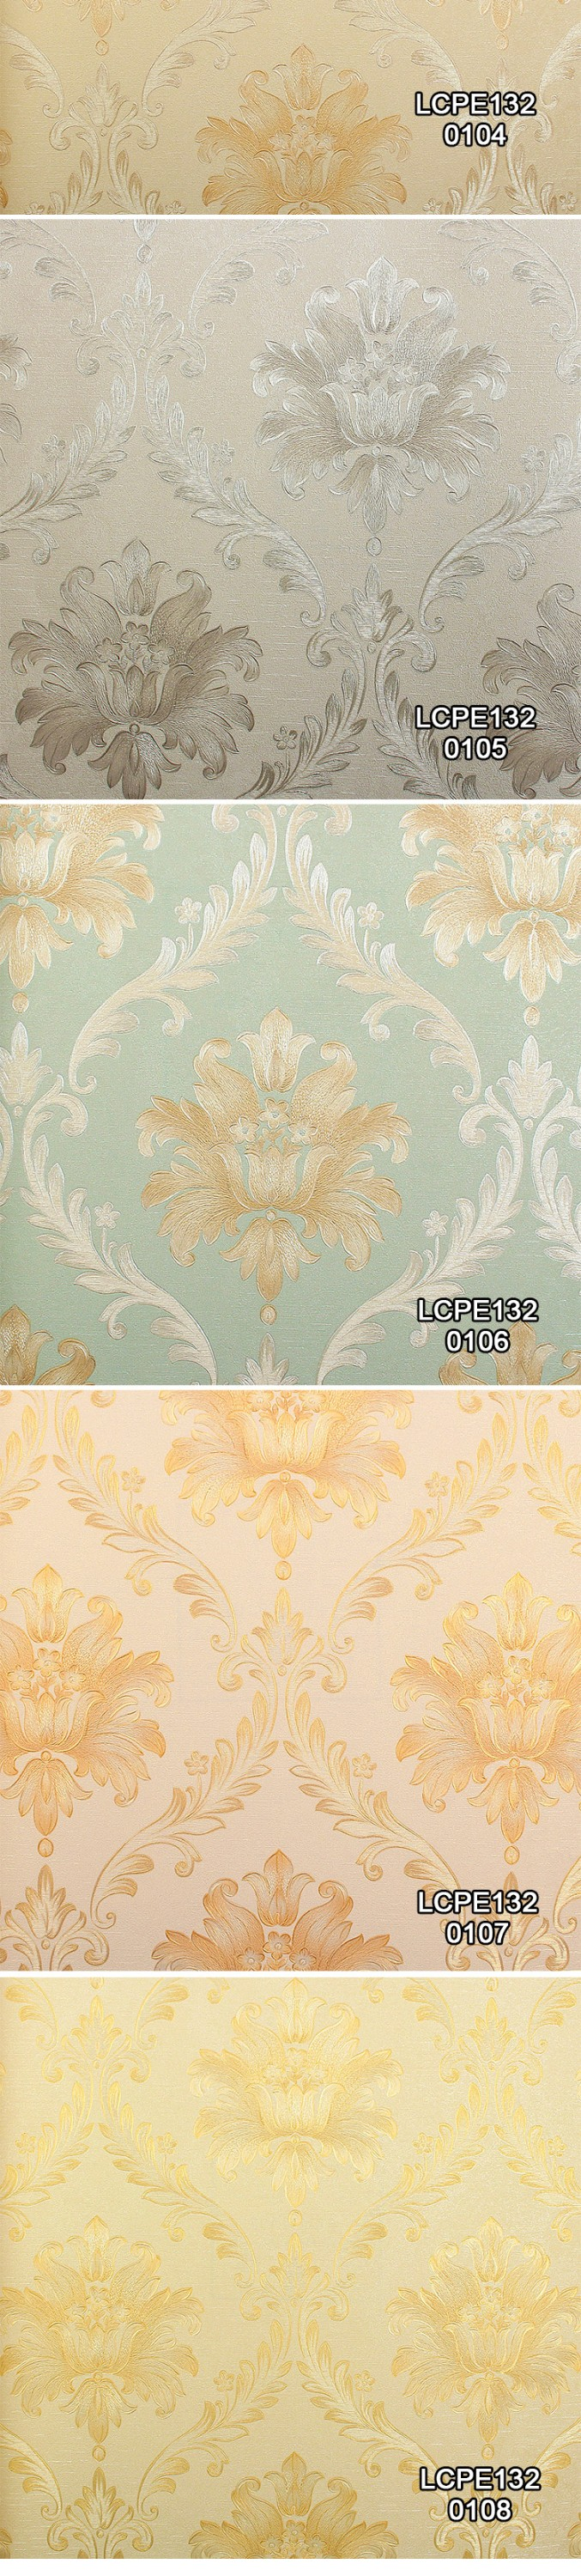 double curling lines circle design waterproof china wallpaper